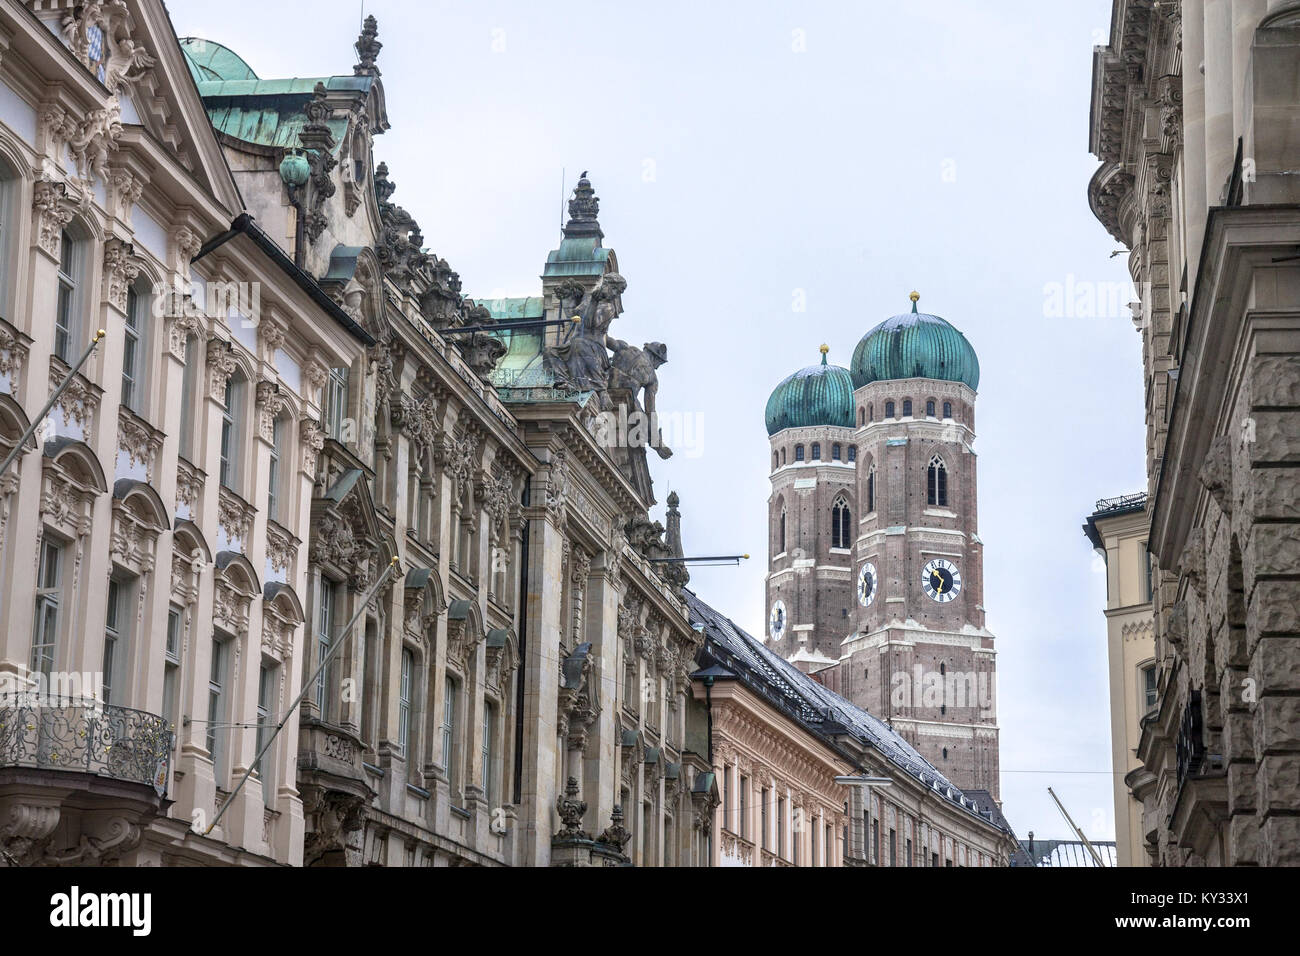 Munich Frauenkirche taken from a medieval nearby street in winter. The Frauenkirche is a church in the Bavarian - Stock Image